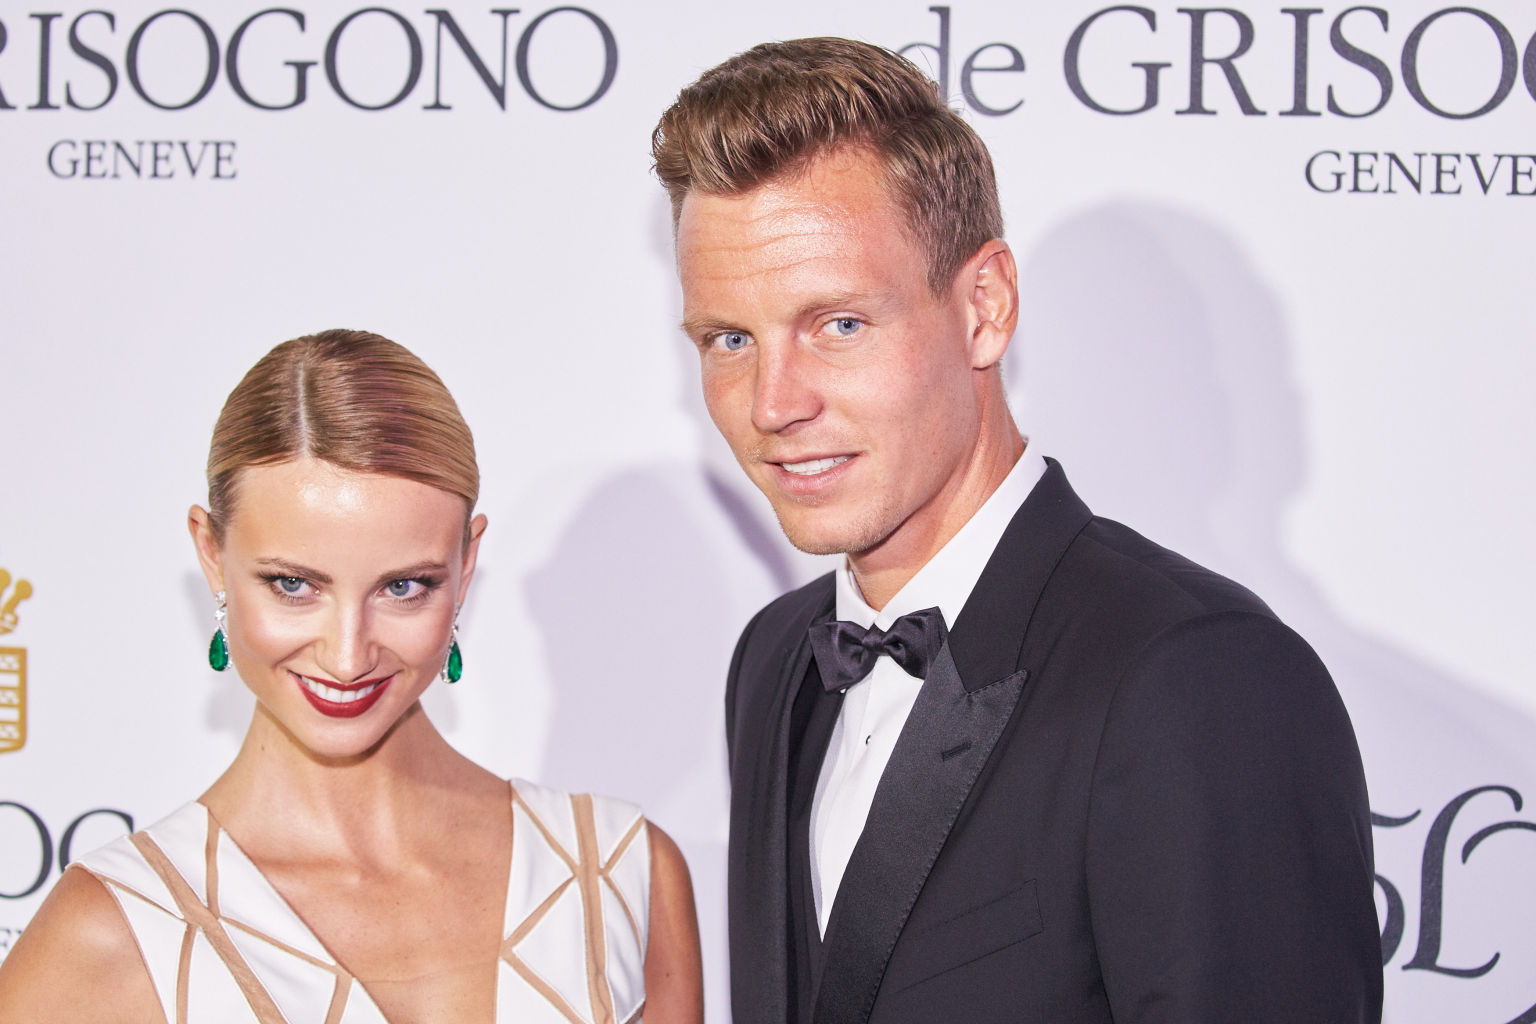 CAP D'ANTIBES, FRANCE - MAY 19: Czech tennis player Tomas Berdych and girlfriend Ester Satorova attend the De Grisogono party during the 68th annual Cannes Film Festival on May 19, 2015 in Cap d'Antibes, France.(Photo by Oleg Nikishin/Kommersant Photo via Getty Images)